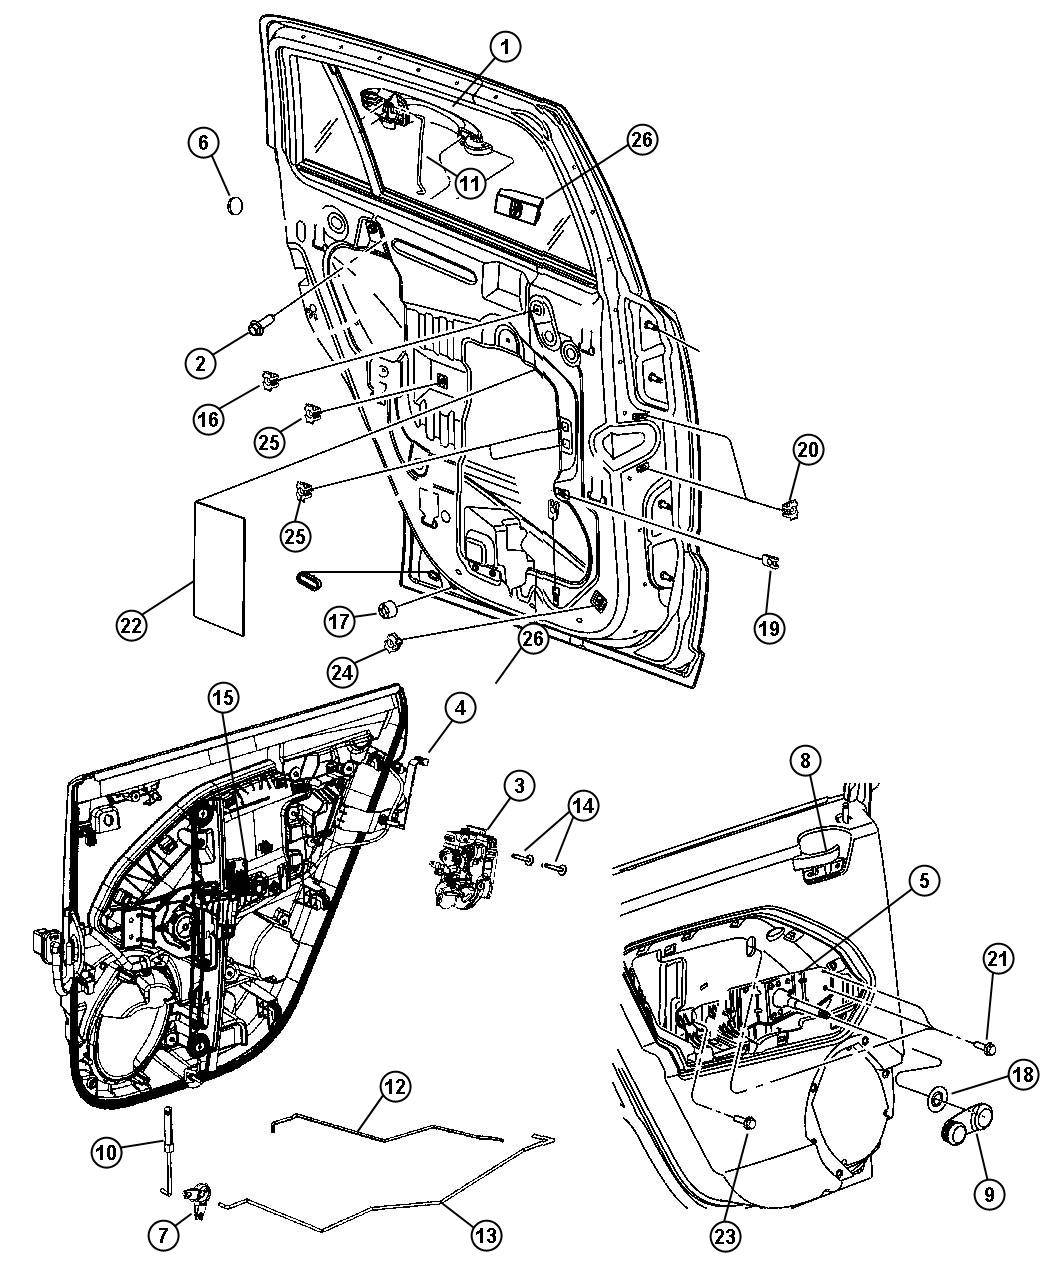 Service Manual Jeep Patriot Driver Door Latch Repair Diagram